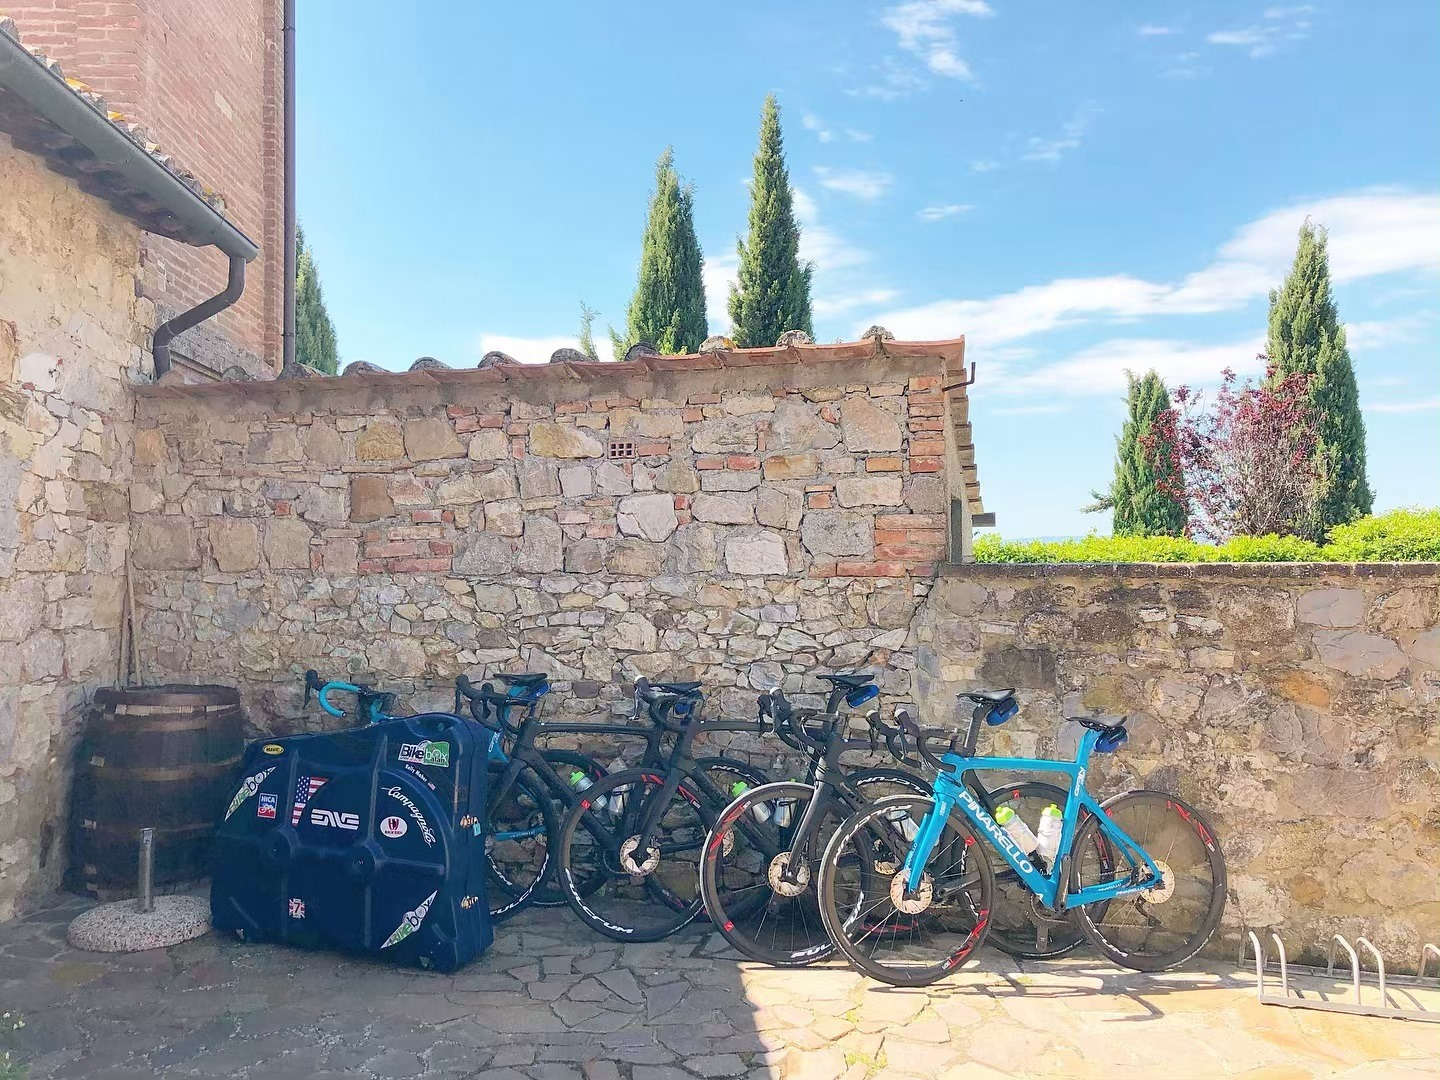 Bike Maintenance Shop - Our bike shop has everything needed to ensure your bike is ready to go on amazing adventures with you. Our ex-pro/mechanic will provide services free of charge and we have a fleet of rental bikes at the ready available to our tour guests.